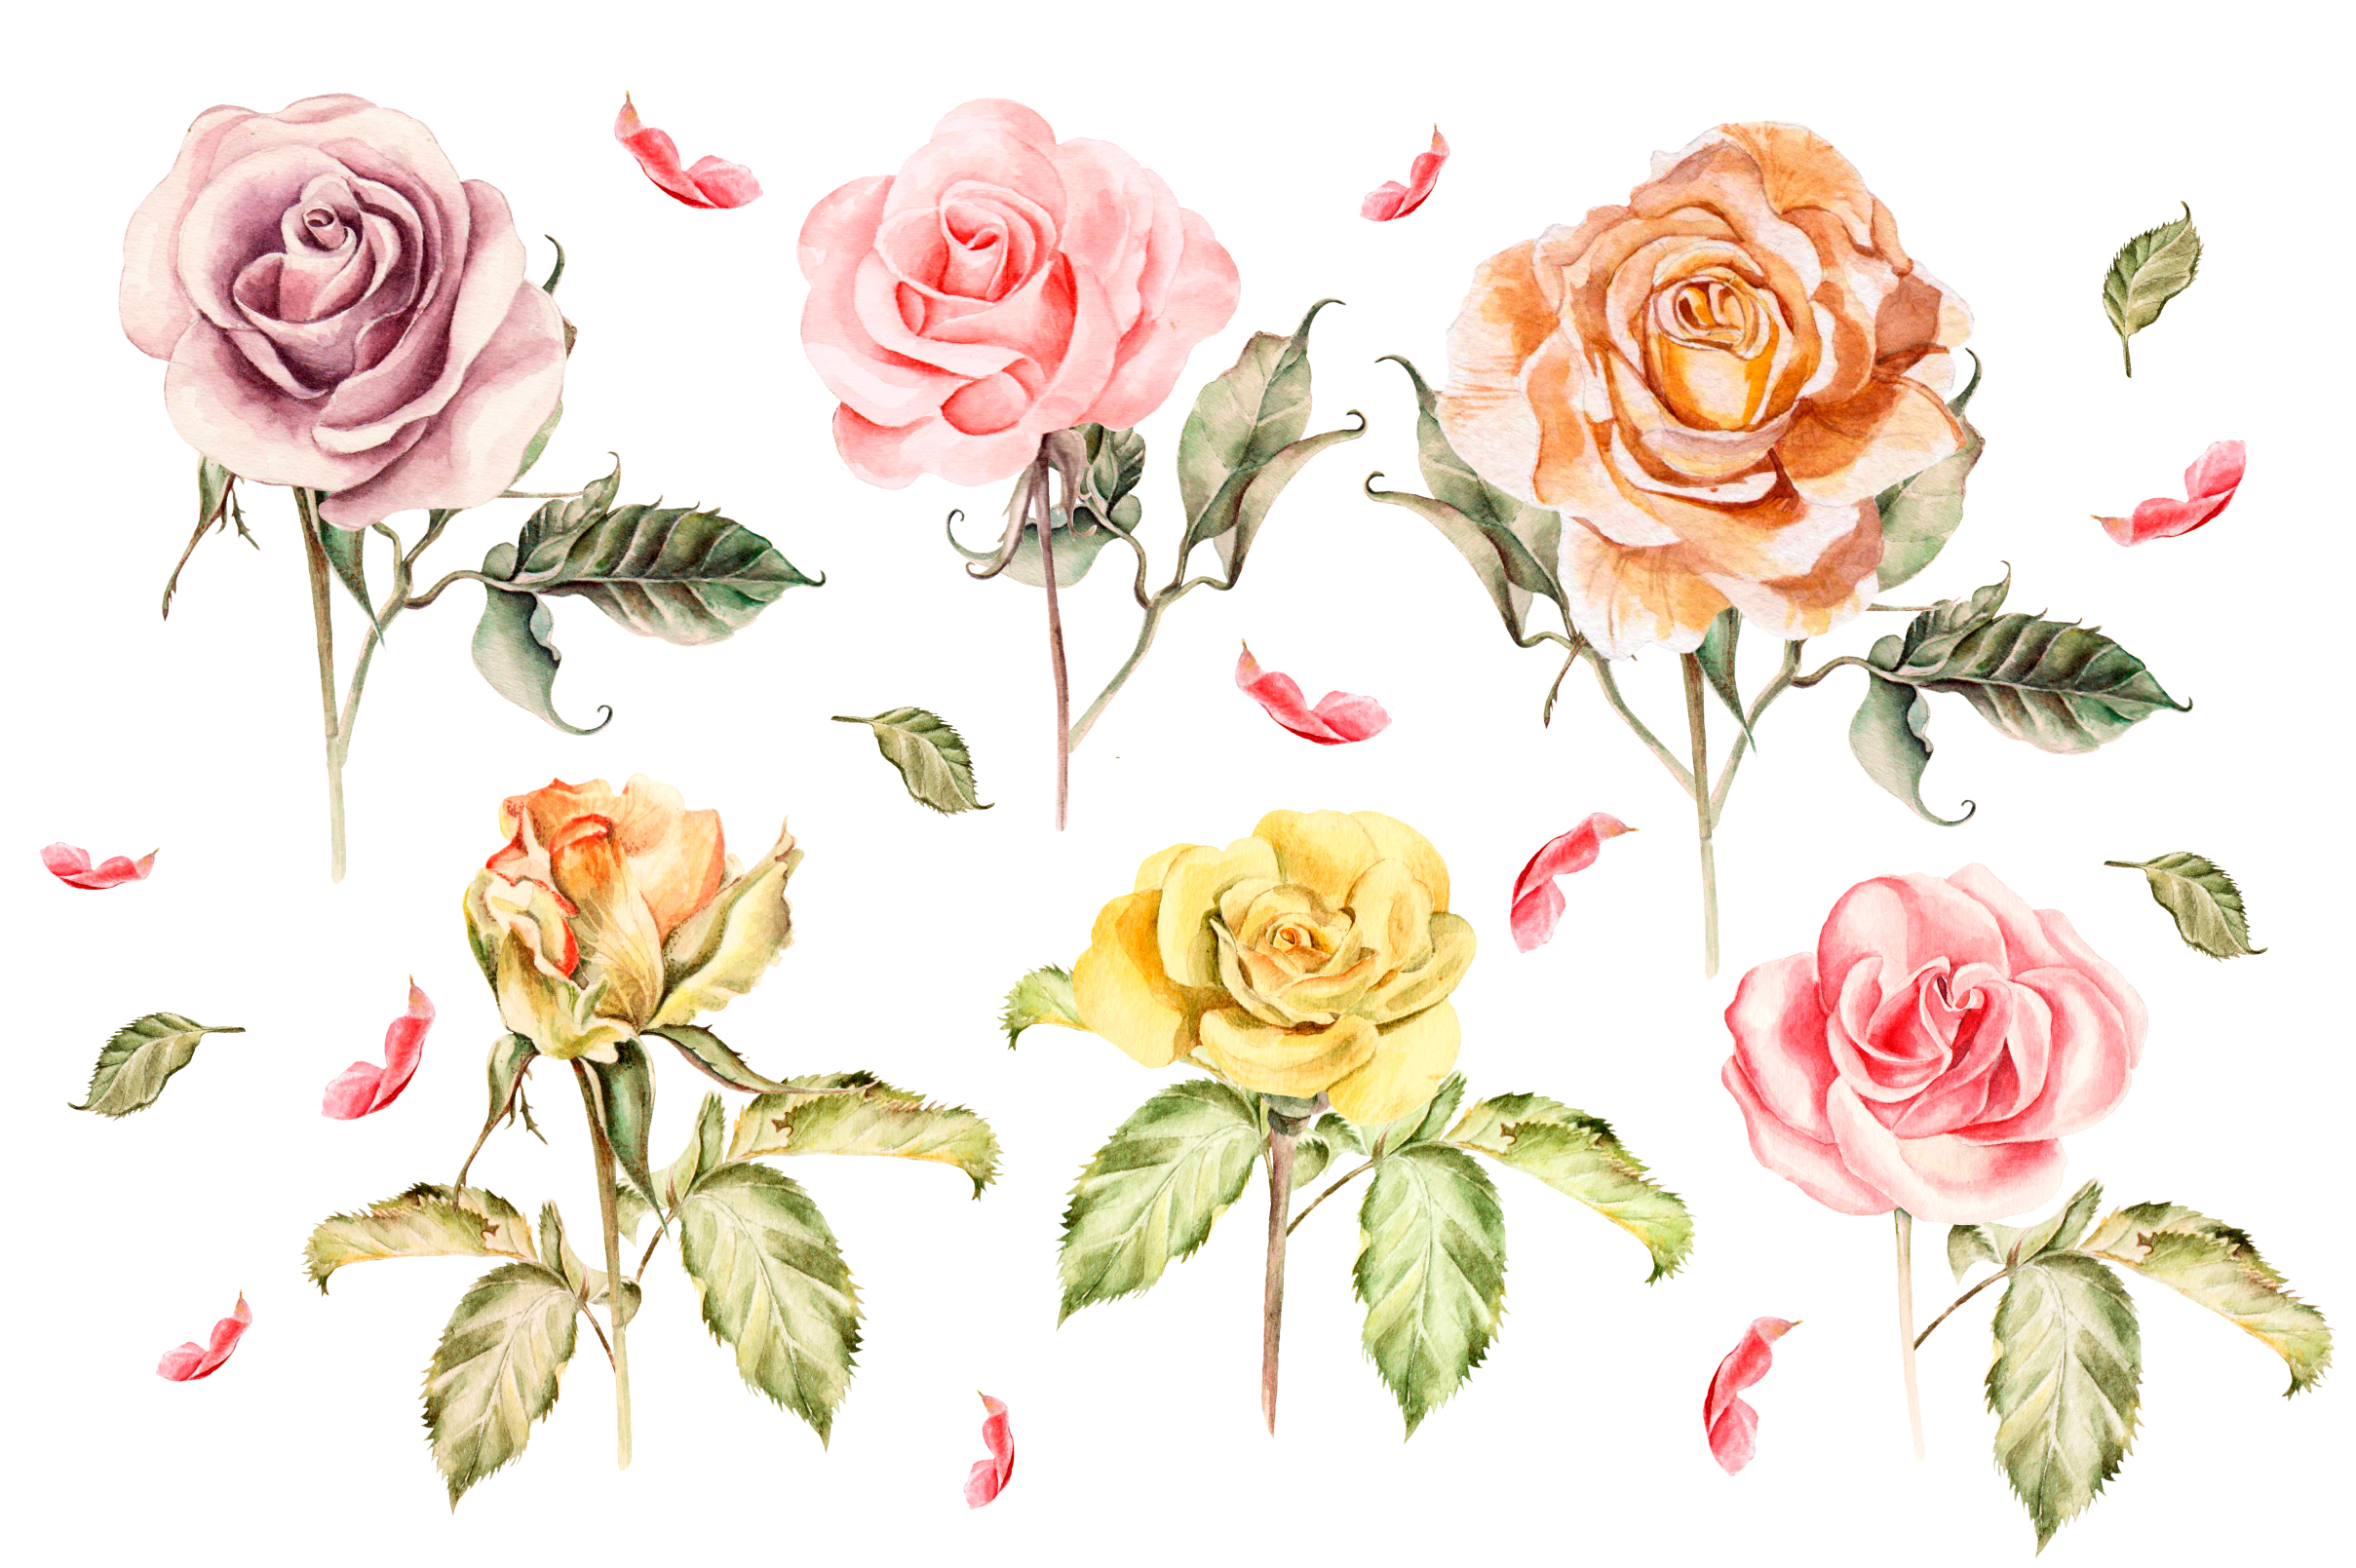 Hand drawn watercolor roses example image 3